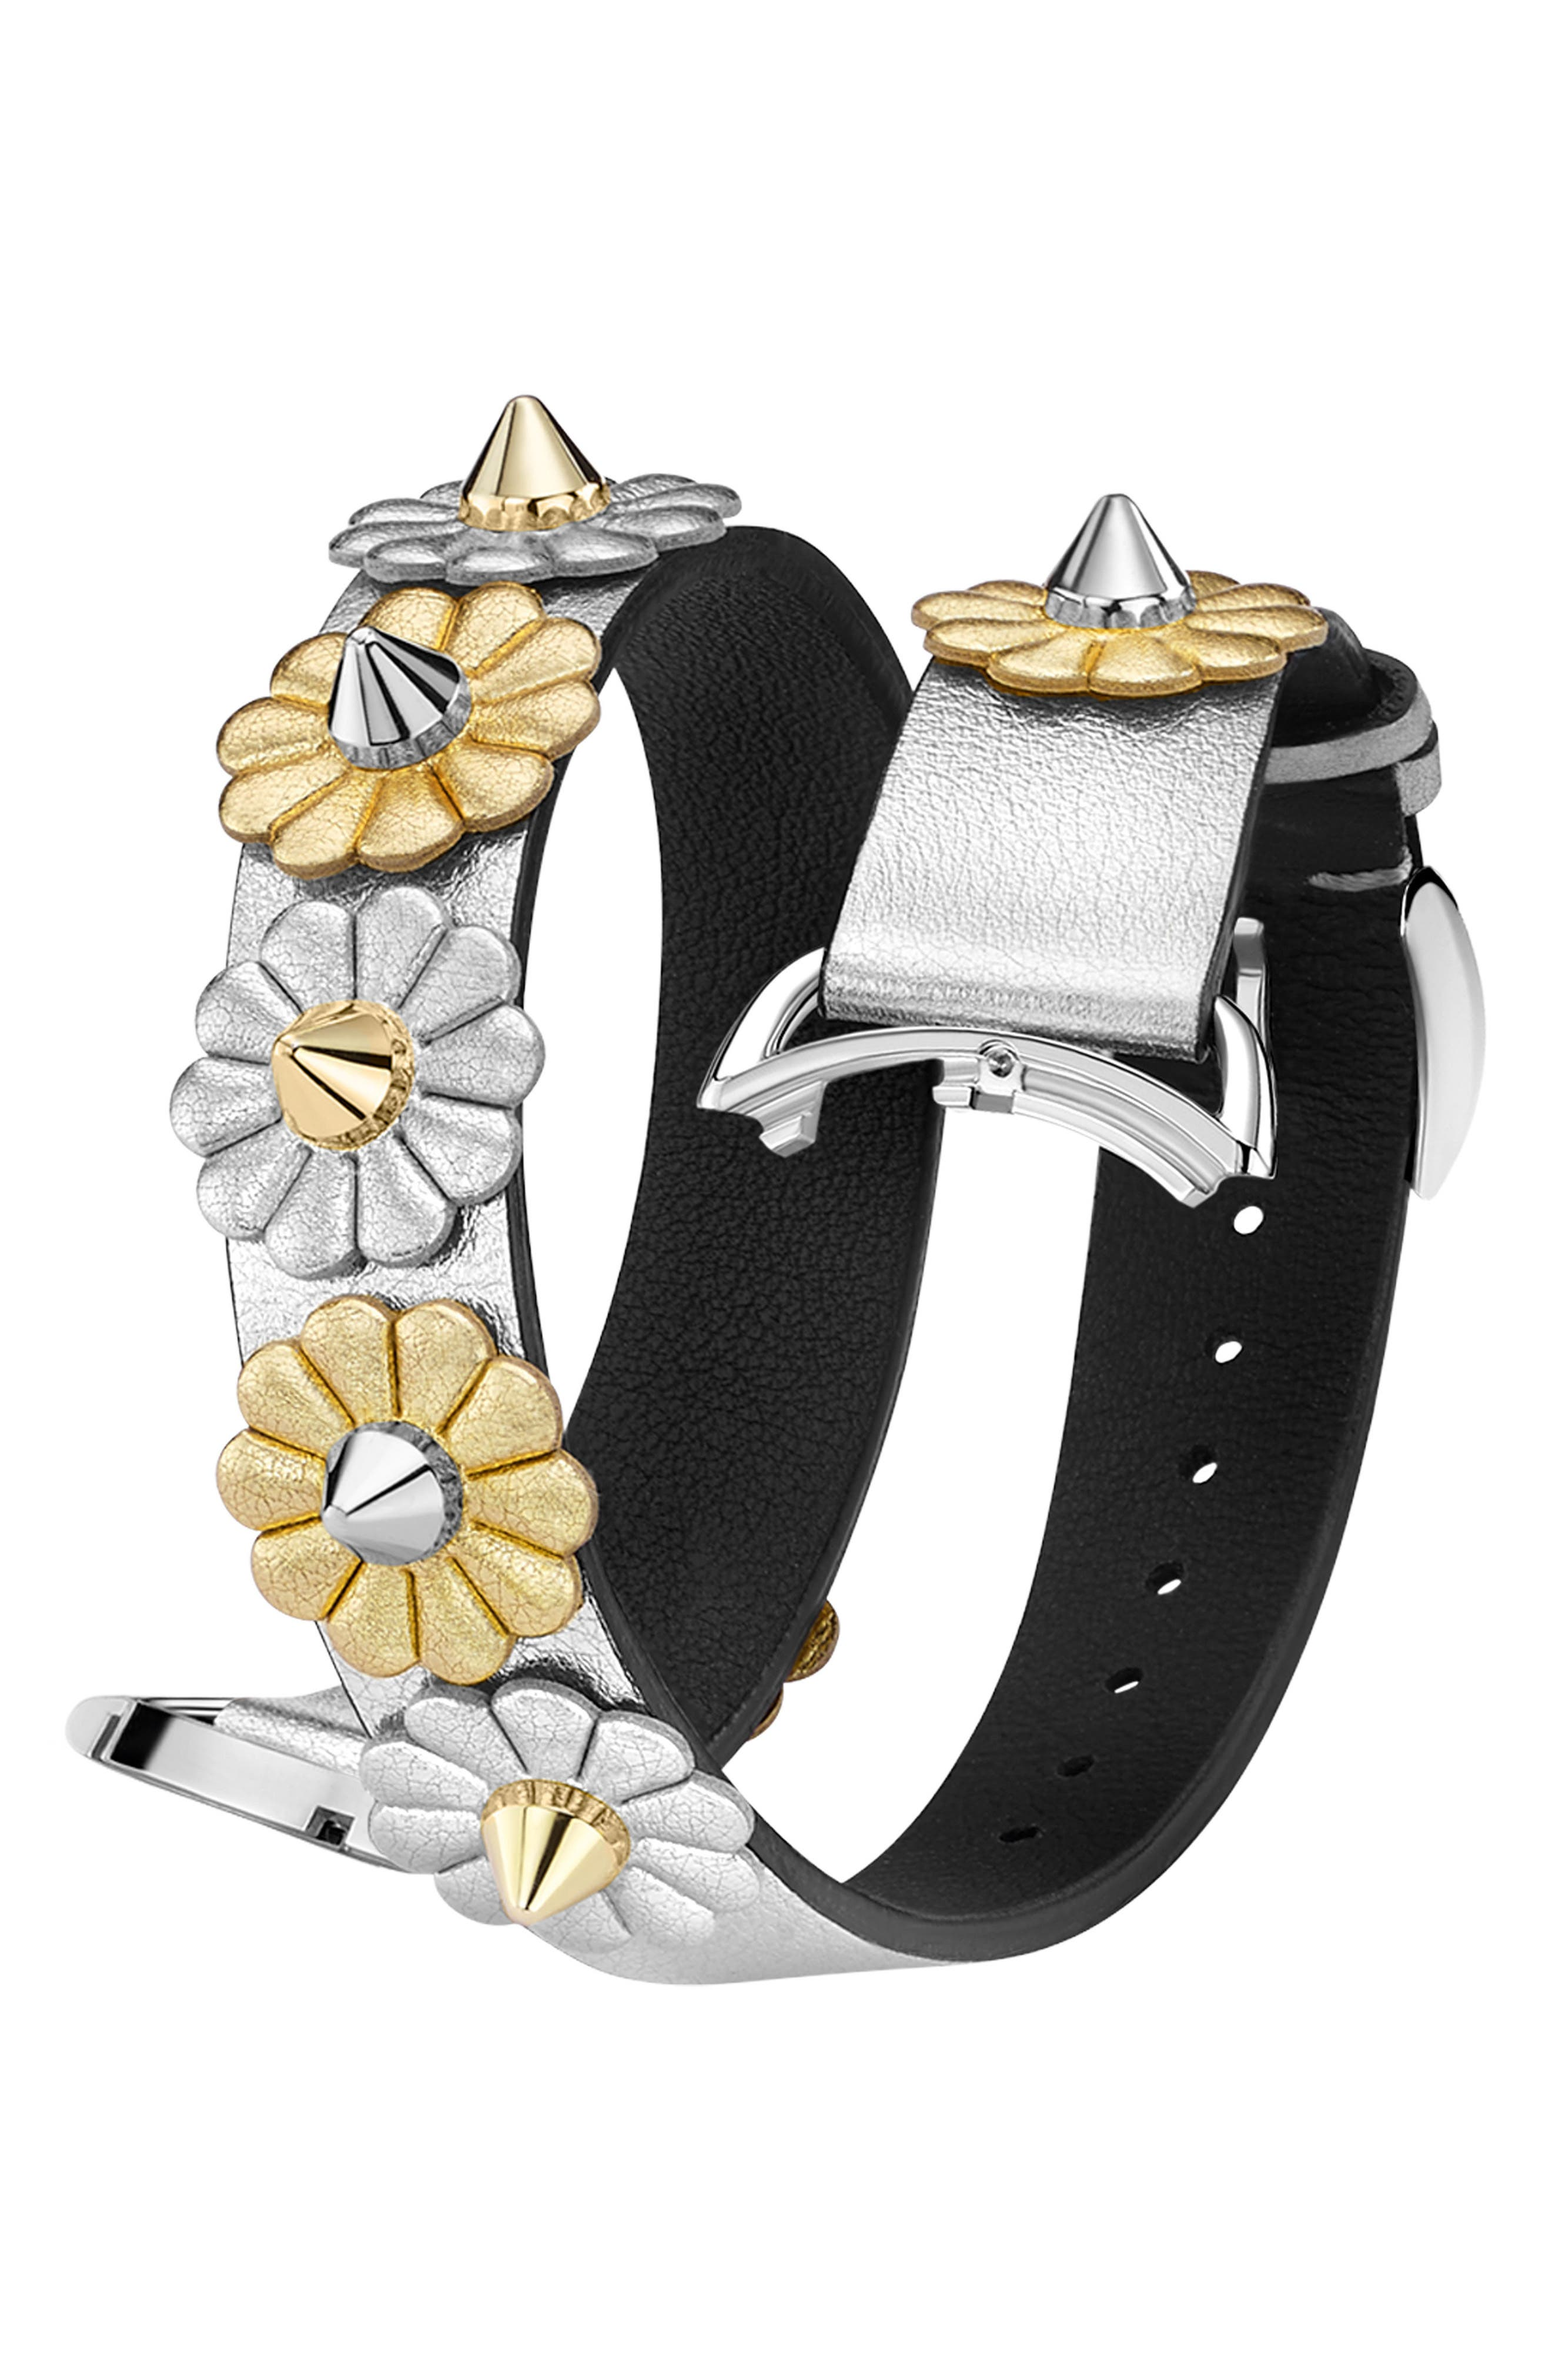 Selleria 17mm Embellished Leather Watch Strap,                             Main thumbnail 1, color,                             SILVER/ GOLD